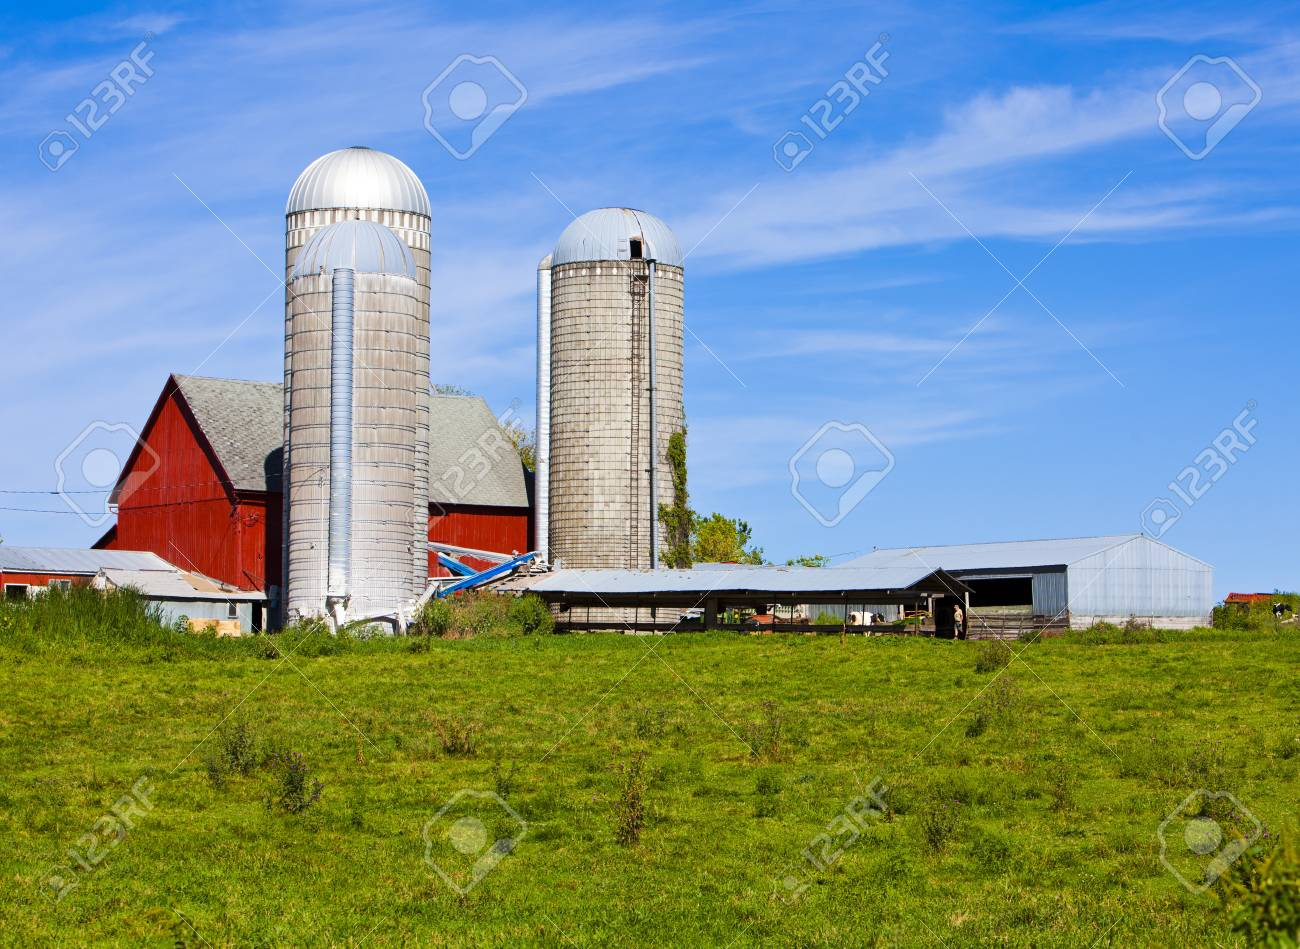 American Country Farm With Blue Sky Stock Photo - 15802890